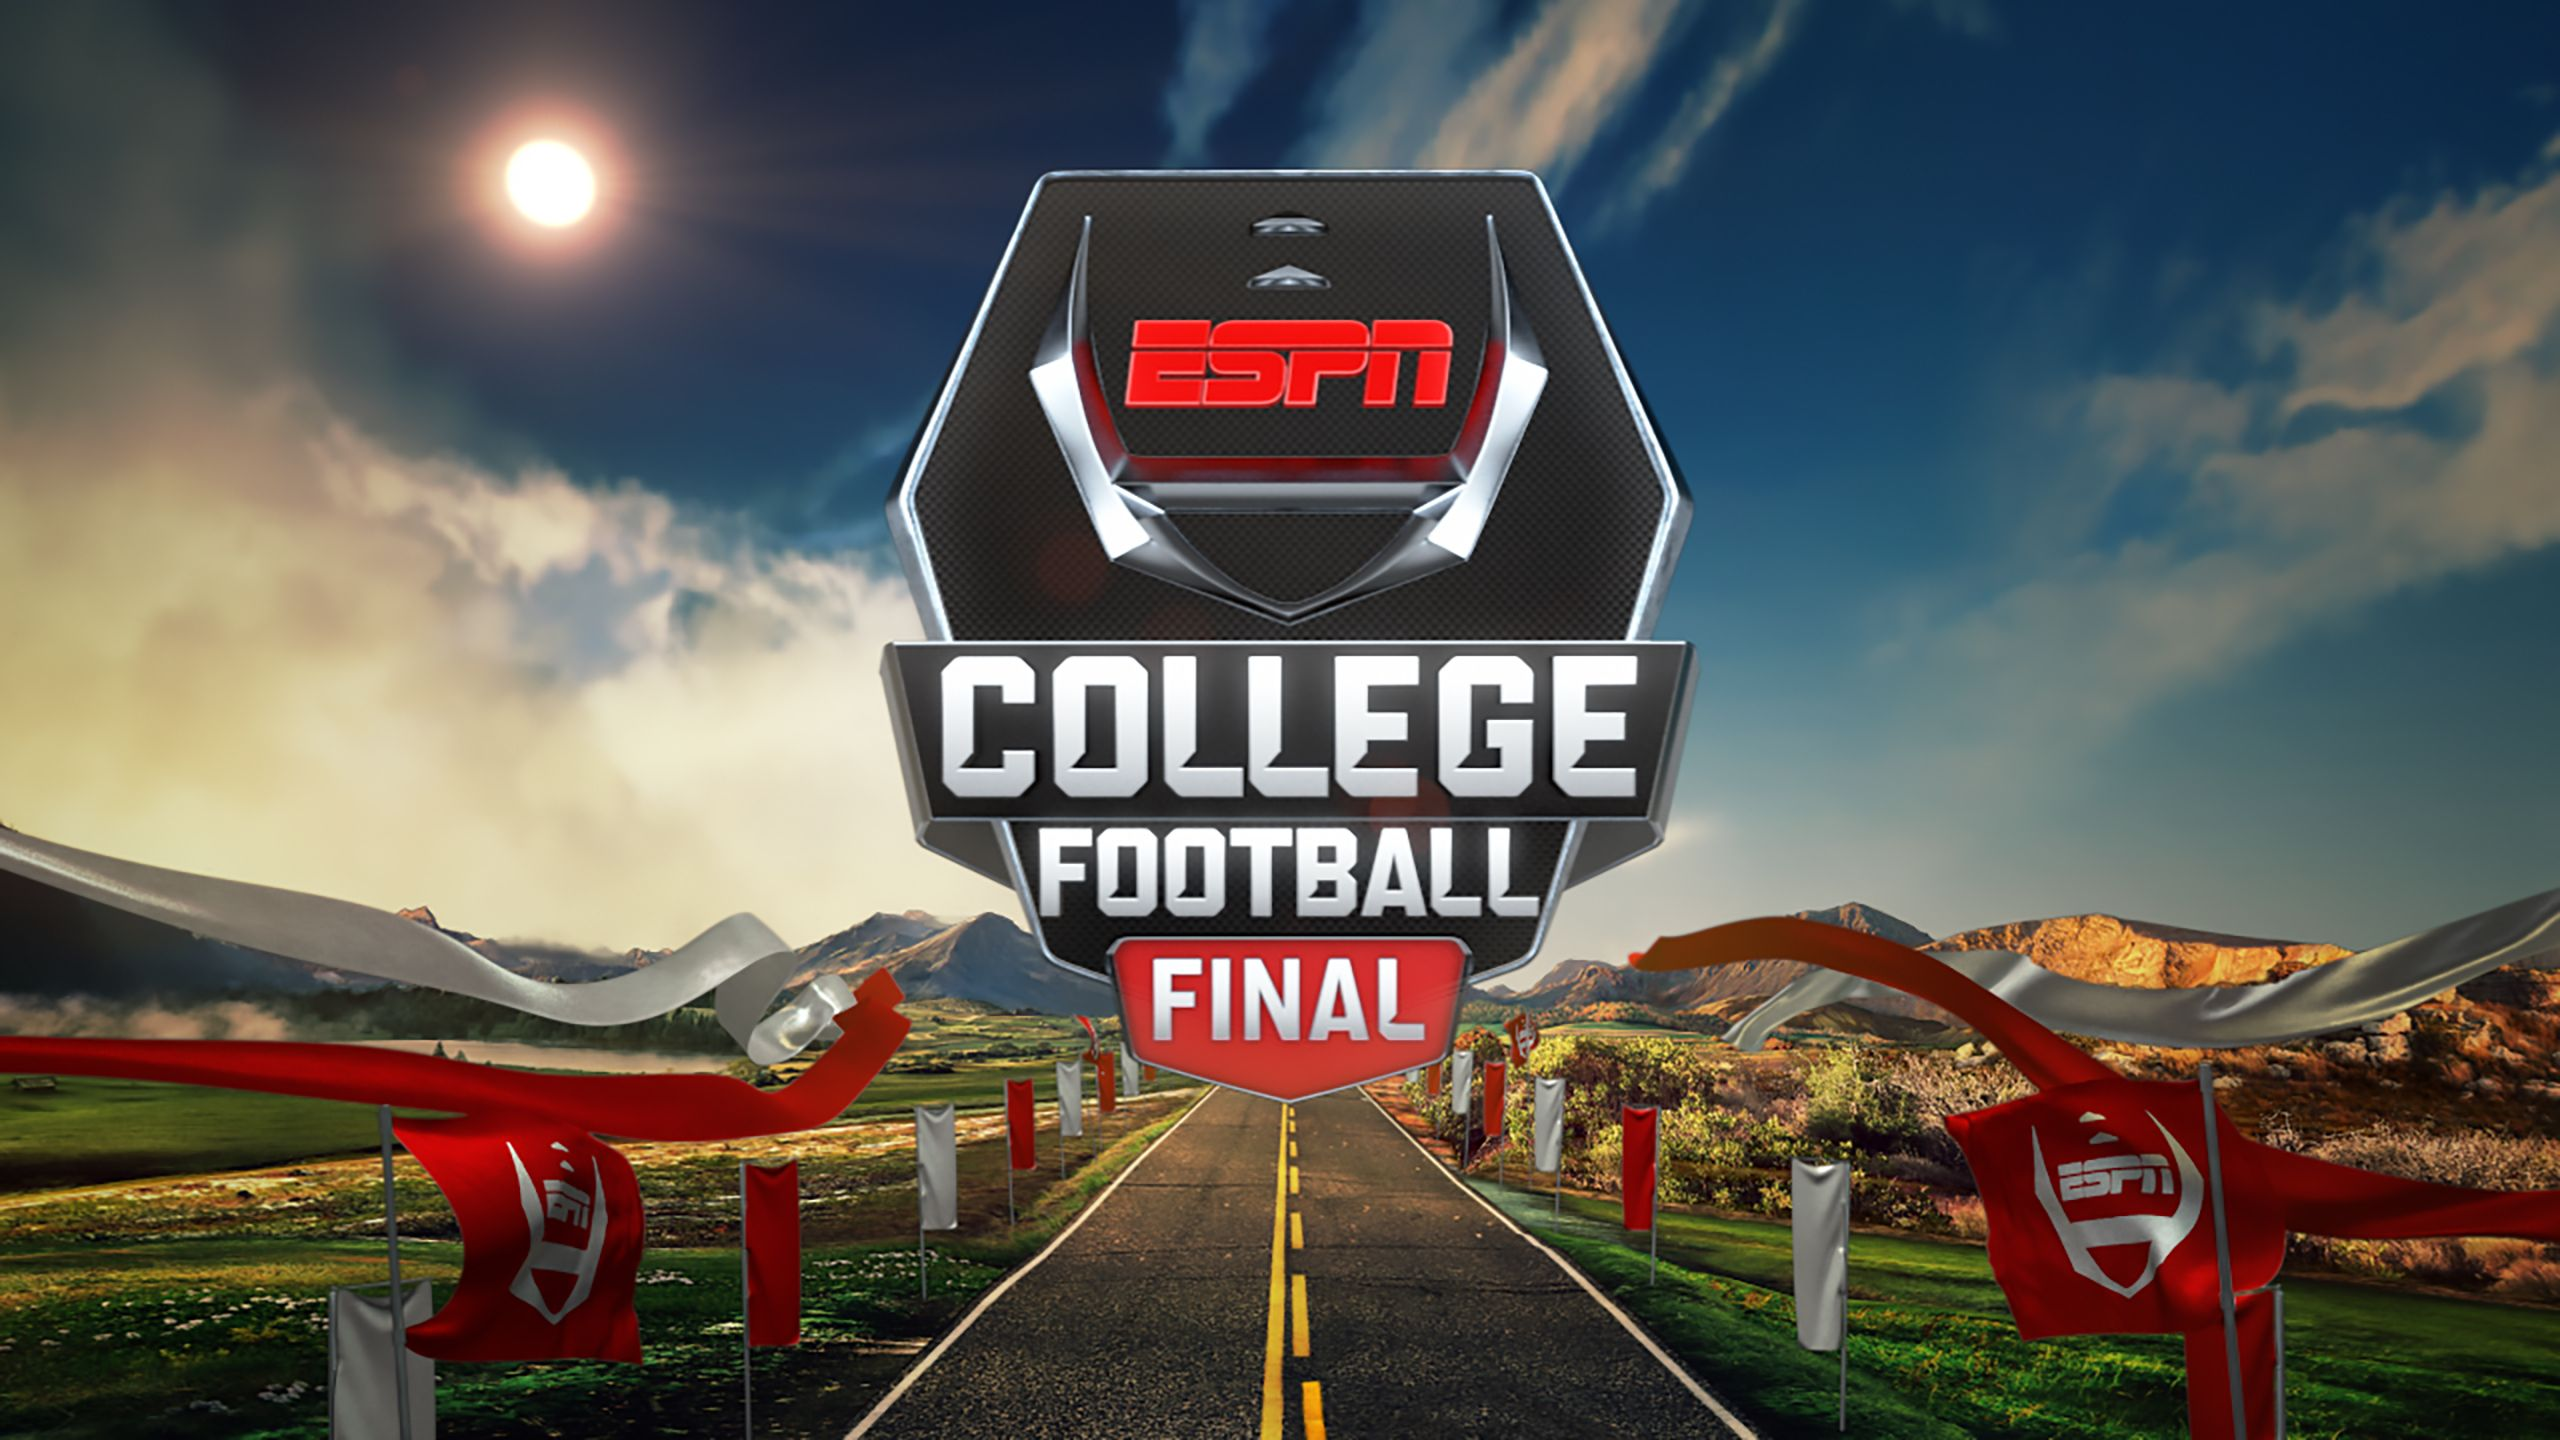 college football playoff final college football scores live espn